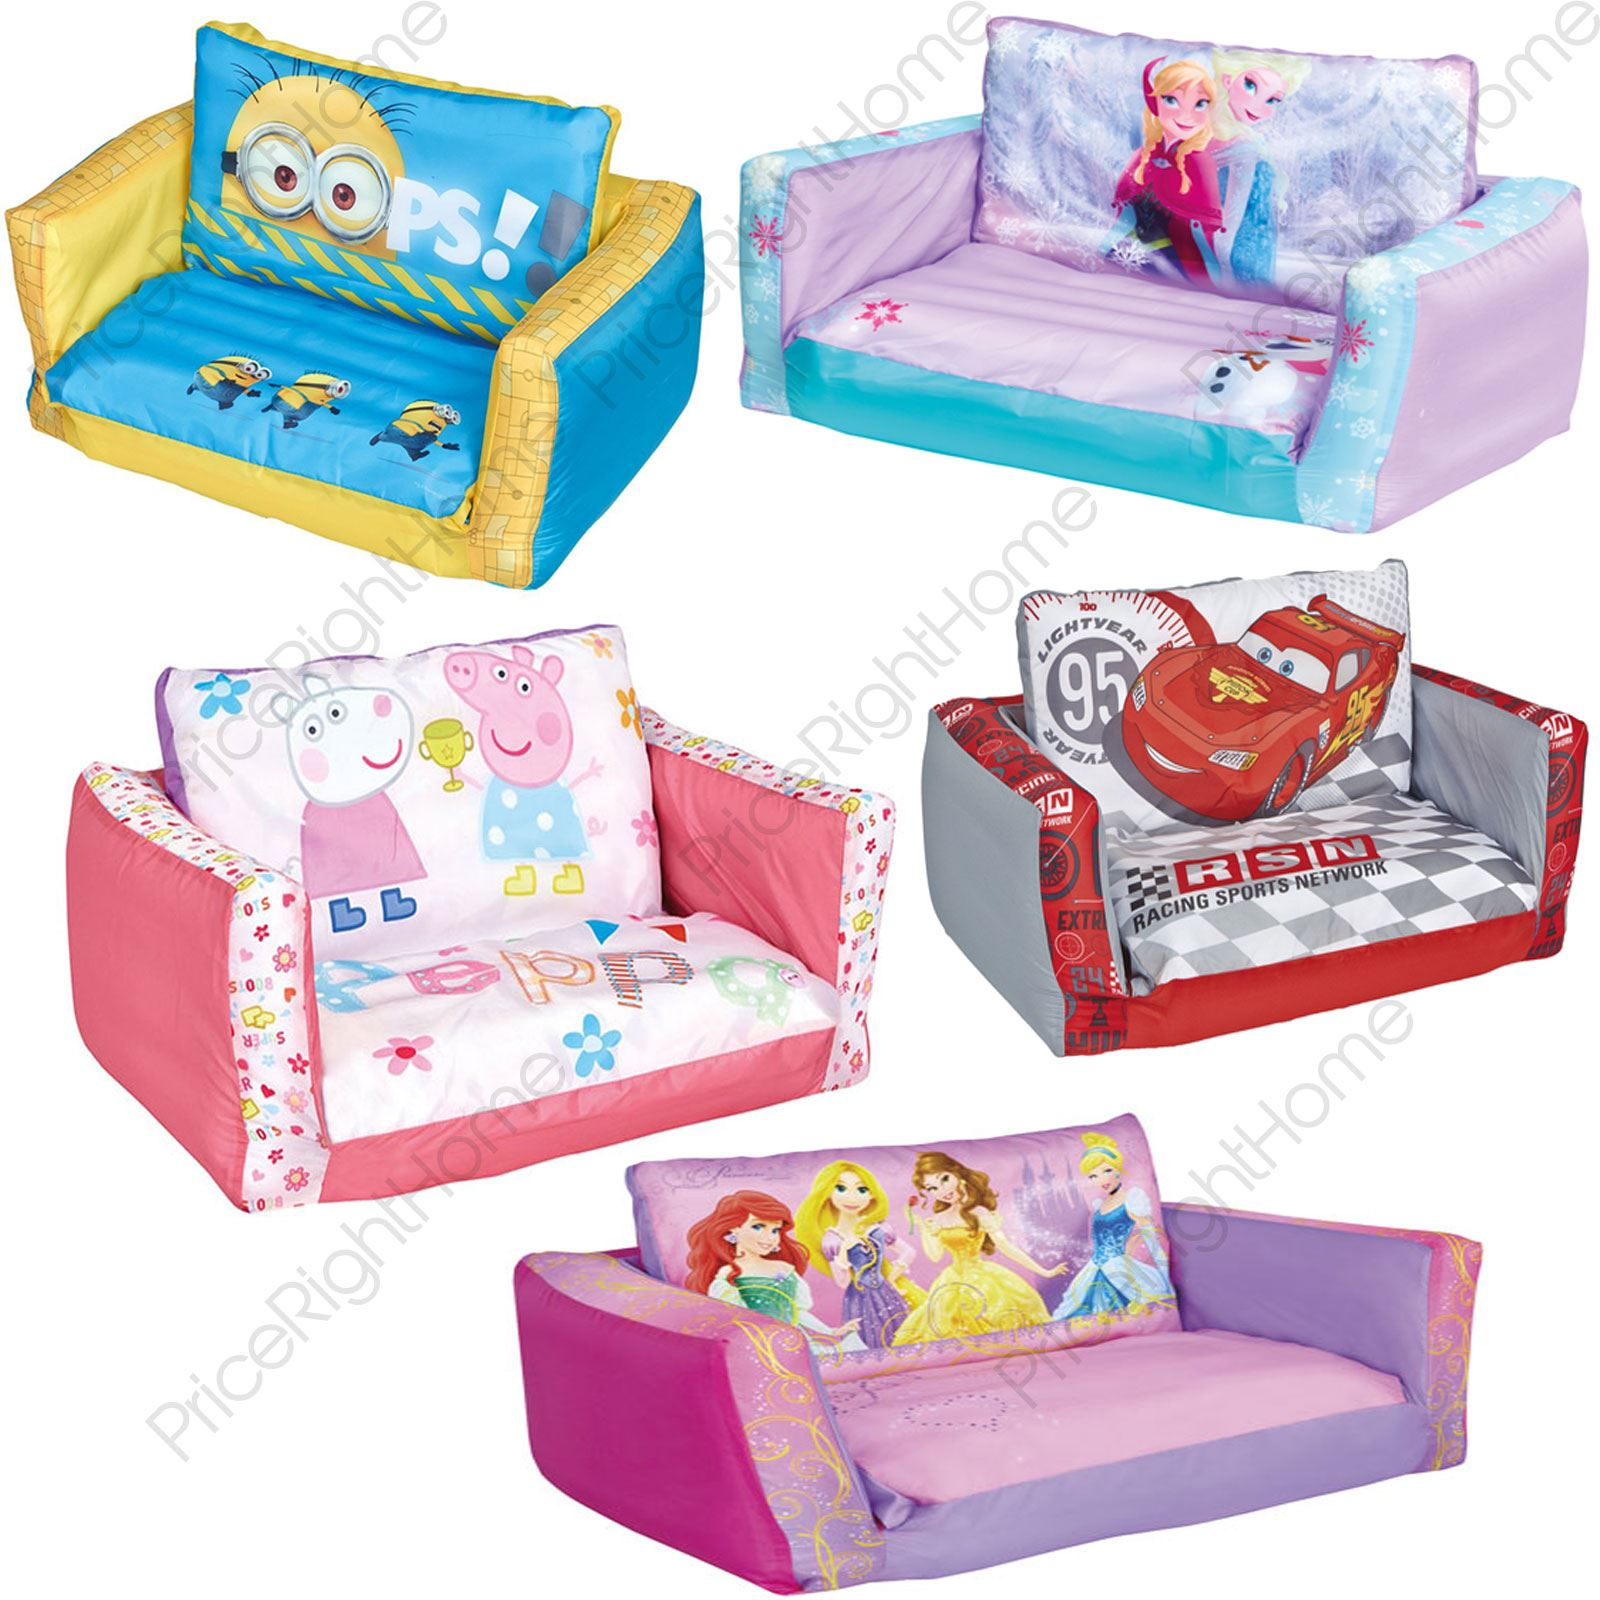 frozen flip sofa canada oxblood chesterfield and armchair out range inflatable kids room new minions